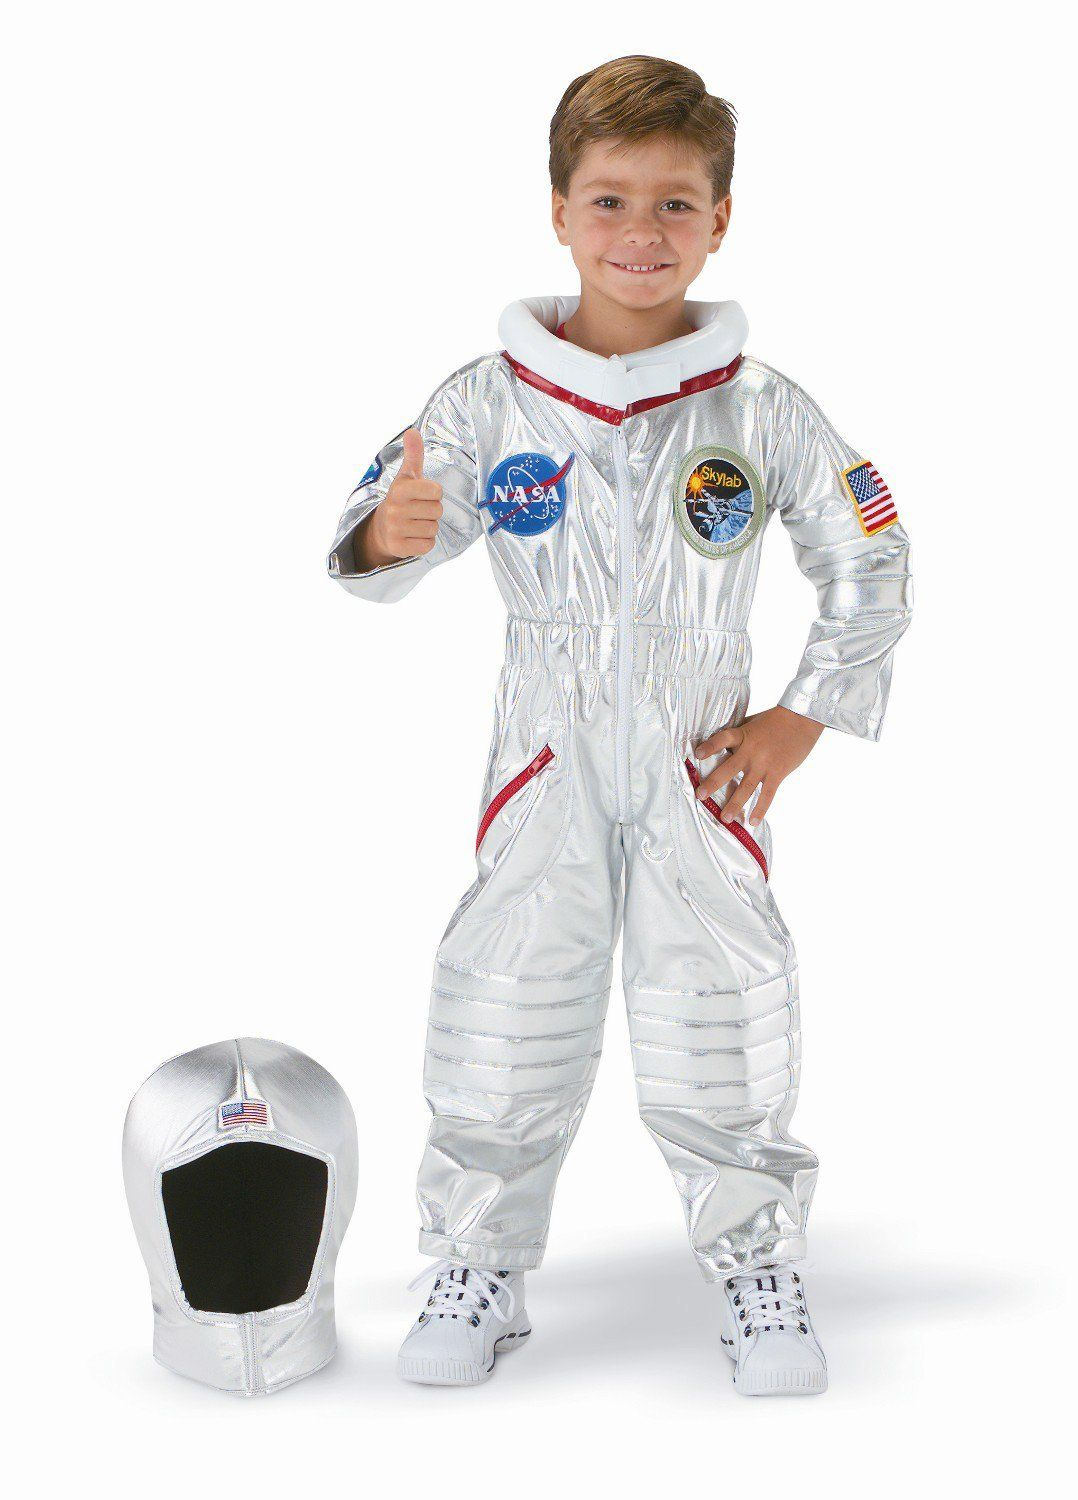 c3e3a345d72e Astronaut costume for kids